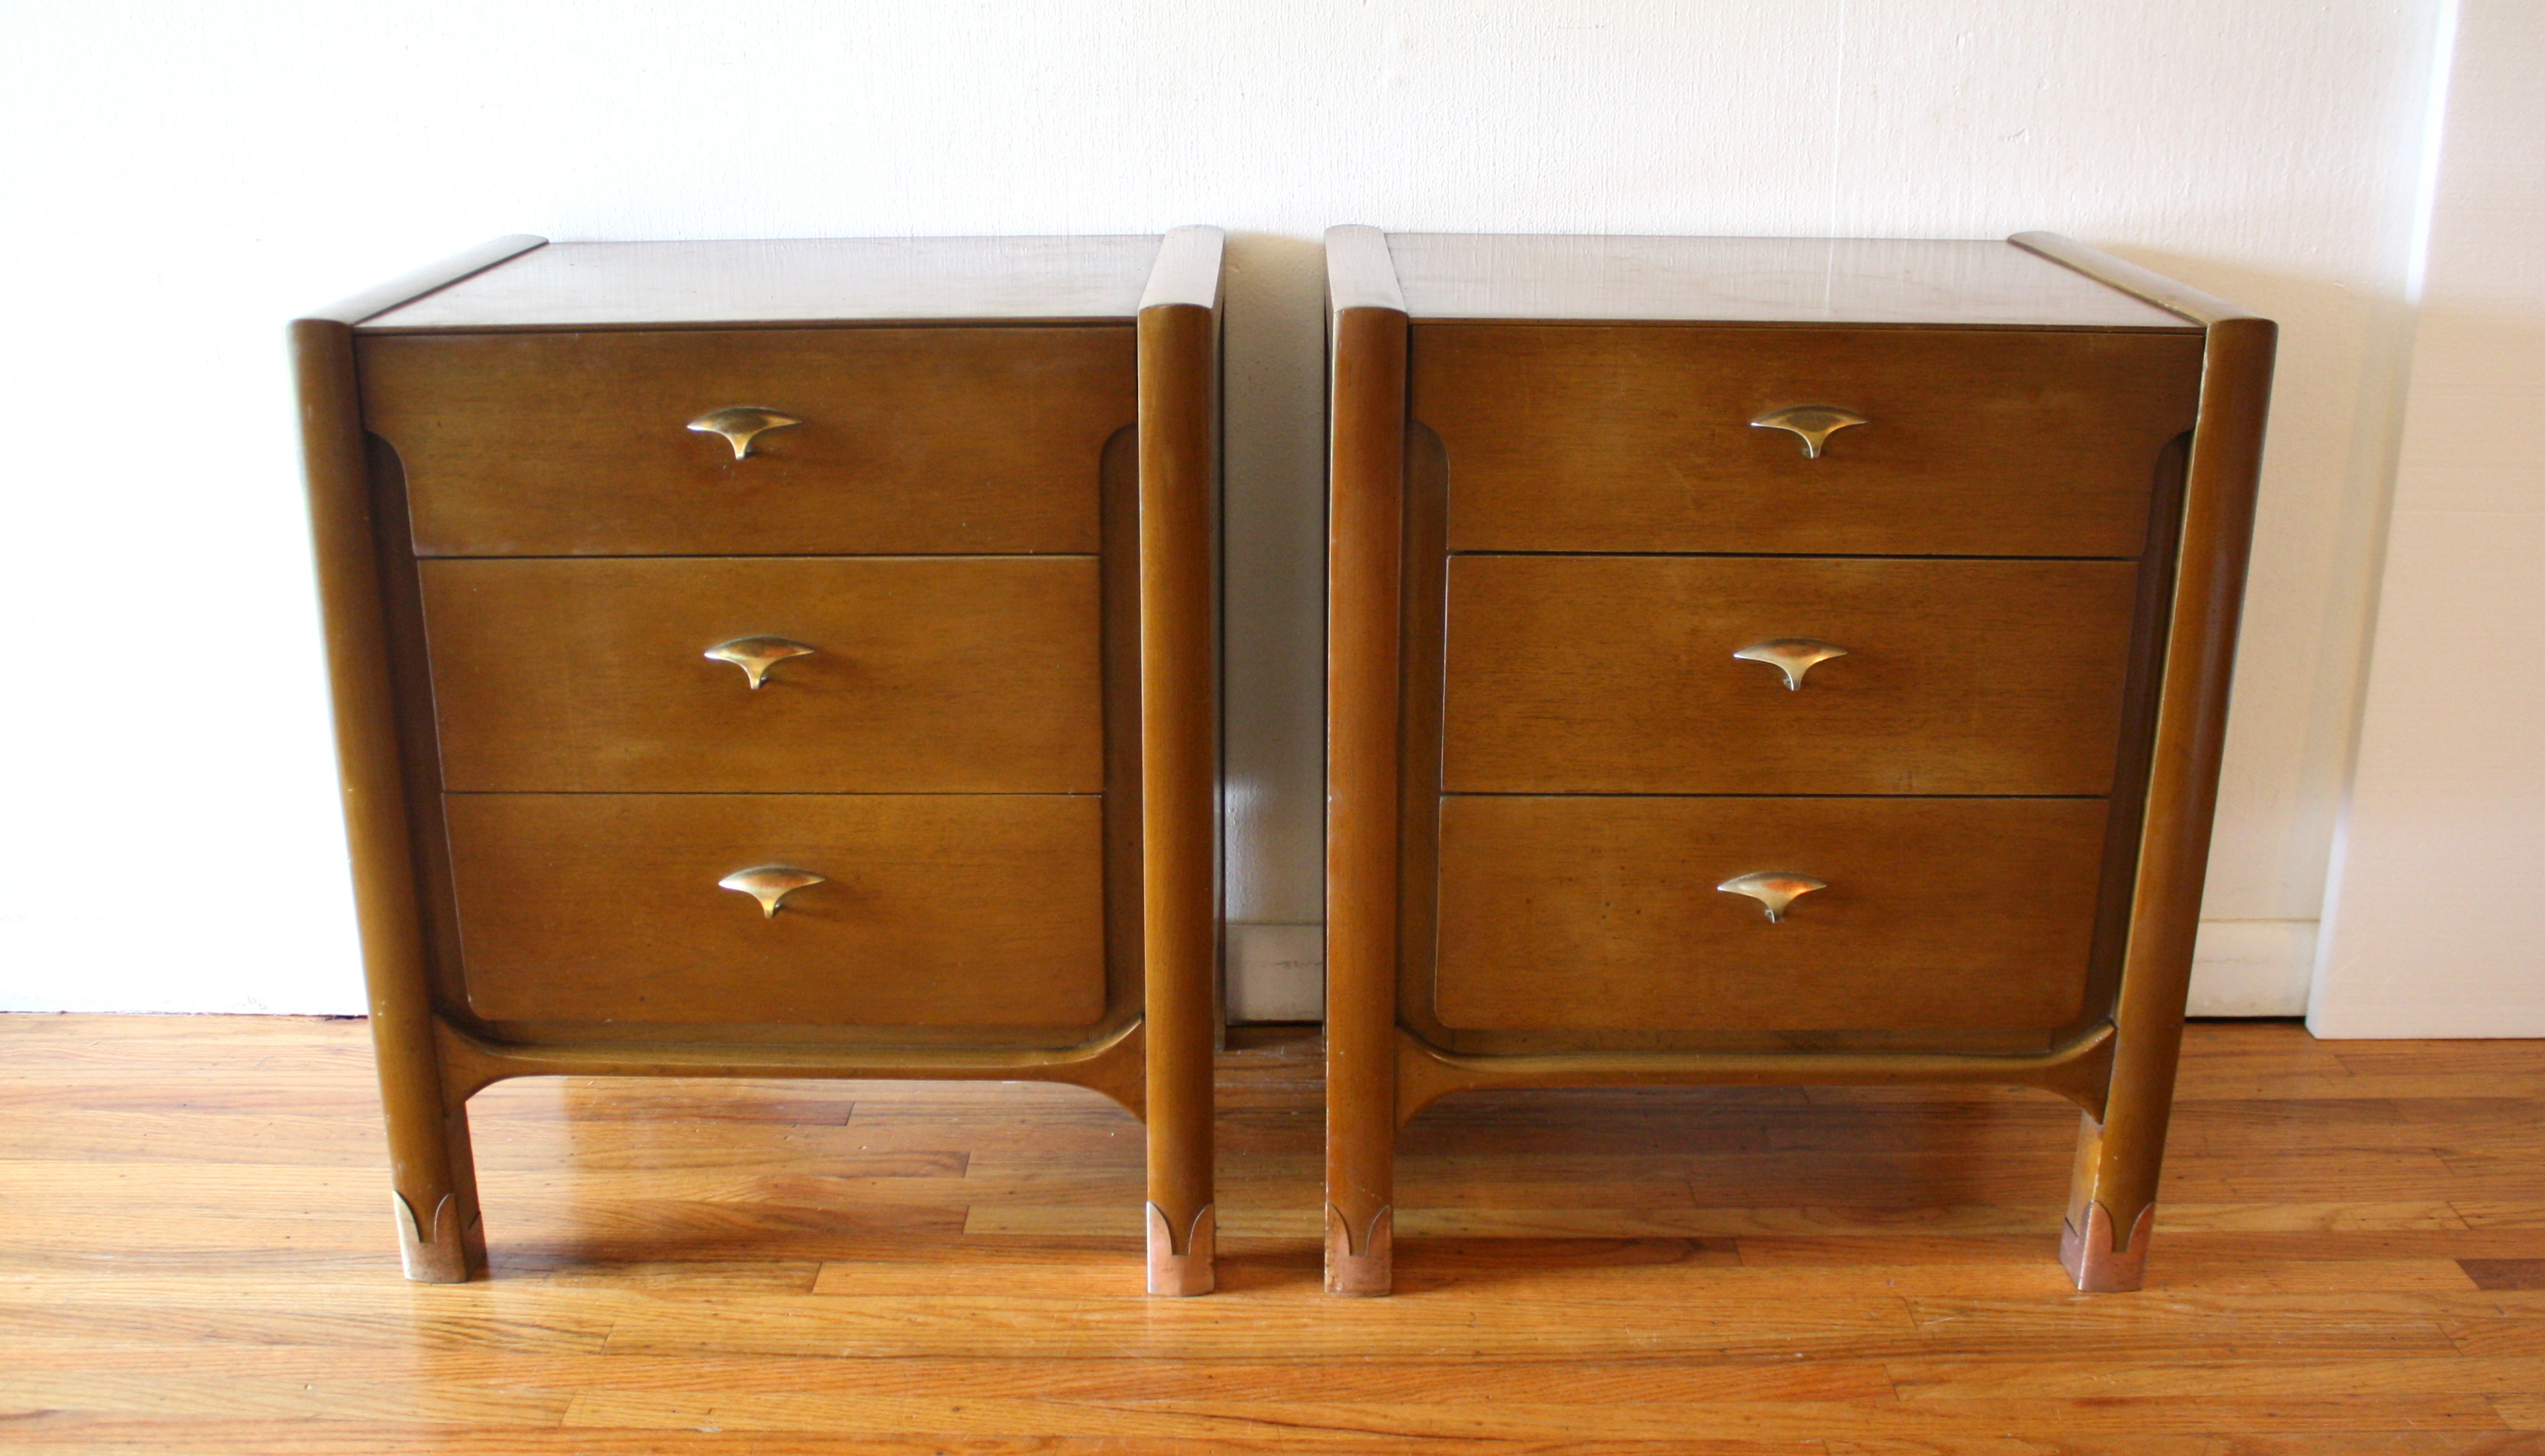 unagusta-pair-of-nightstands-1